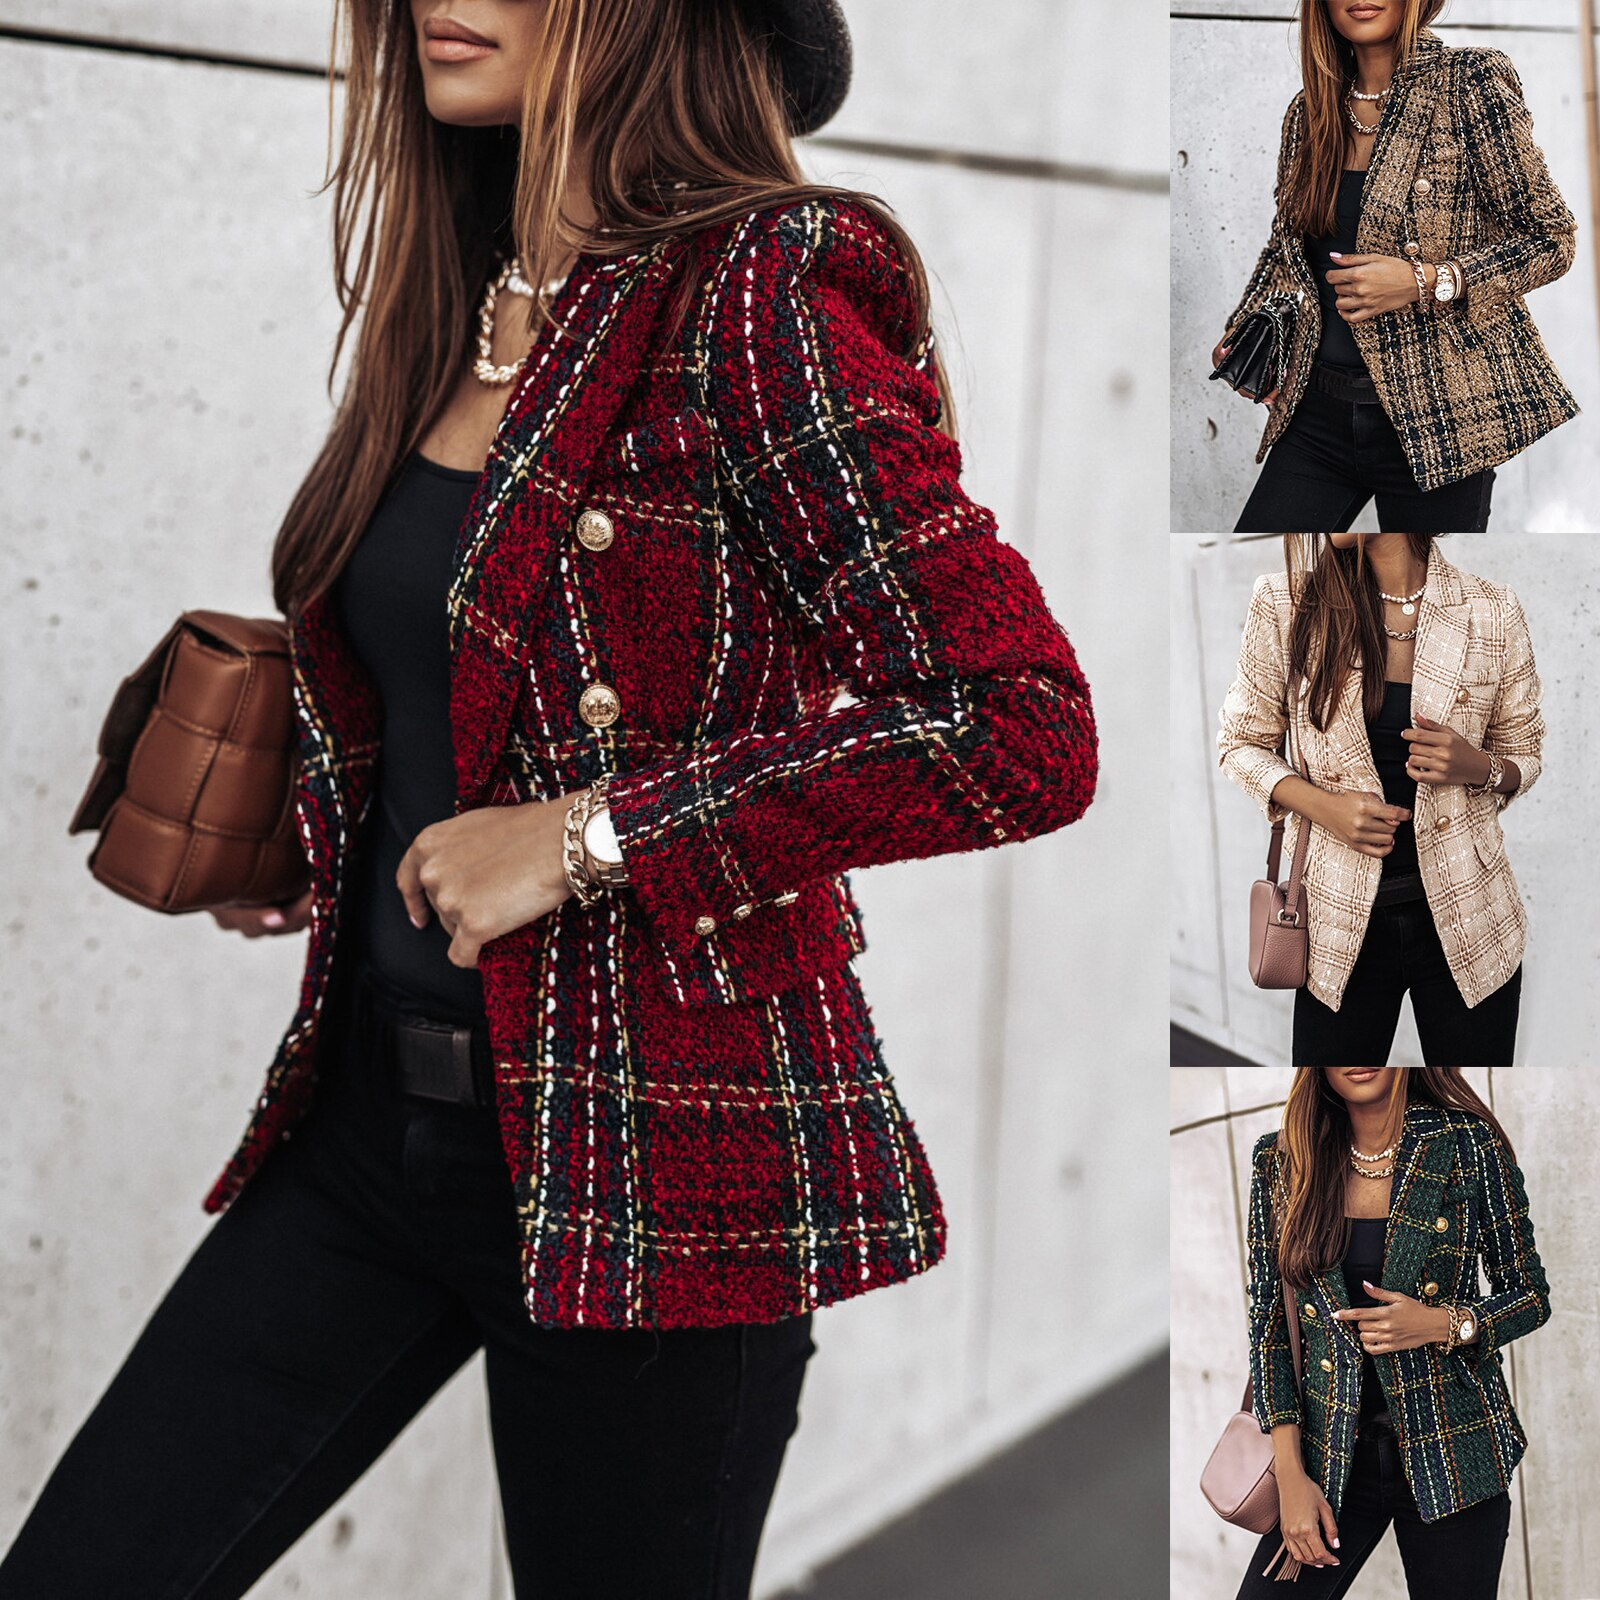 Plaid Blazer 2021 Women Spring-Autumn Vintage Tweed Suits Jackets Office Ladies Chic Slim Blazers Gi